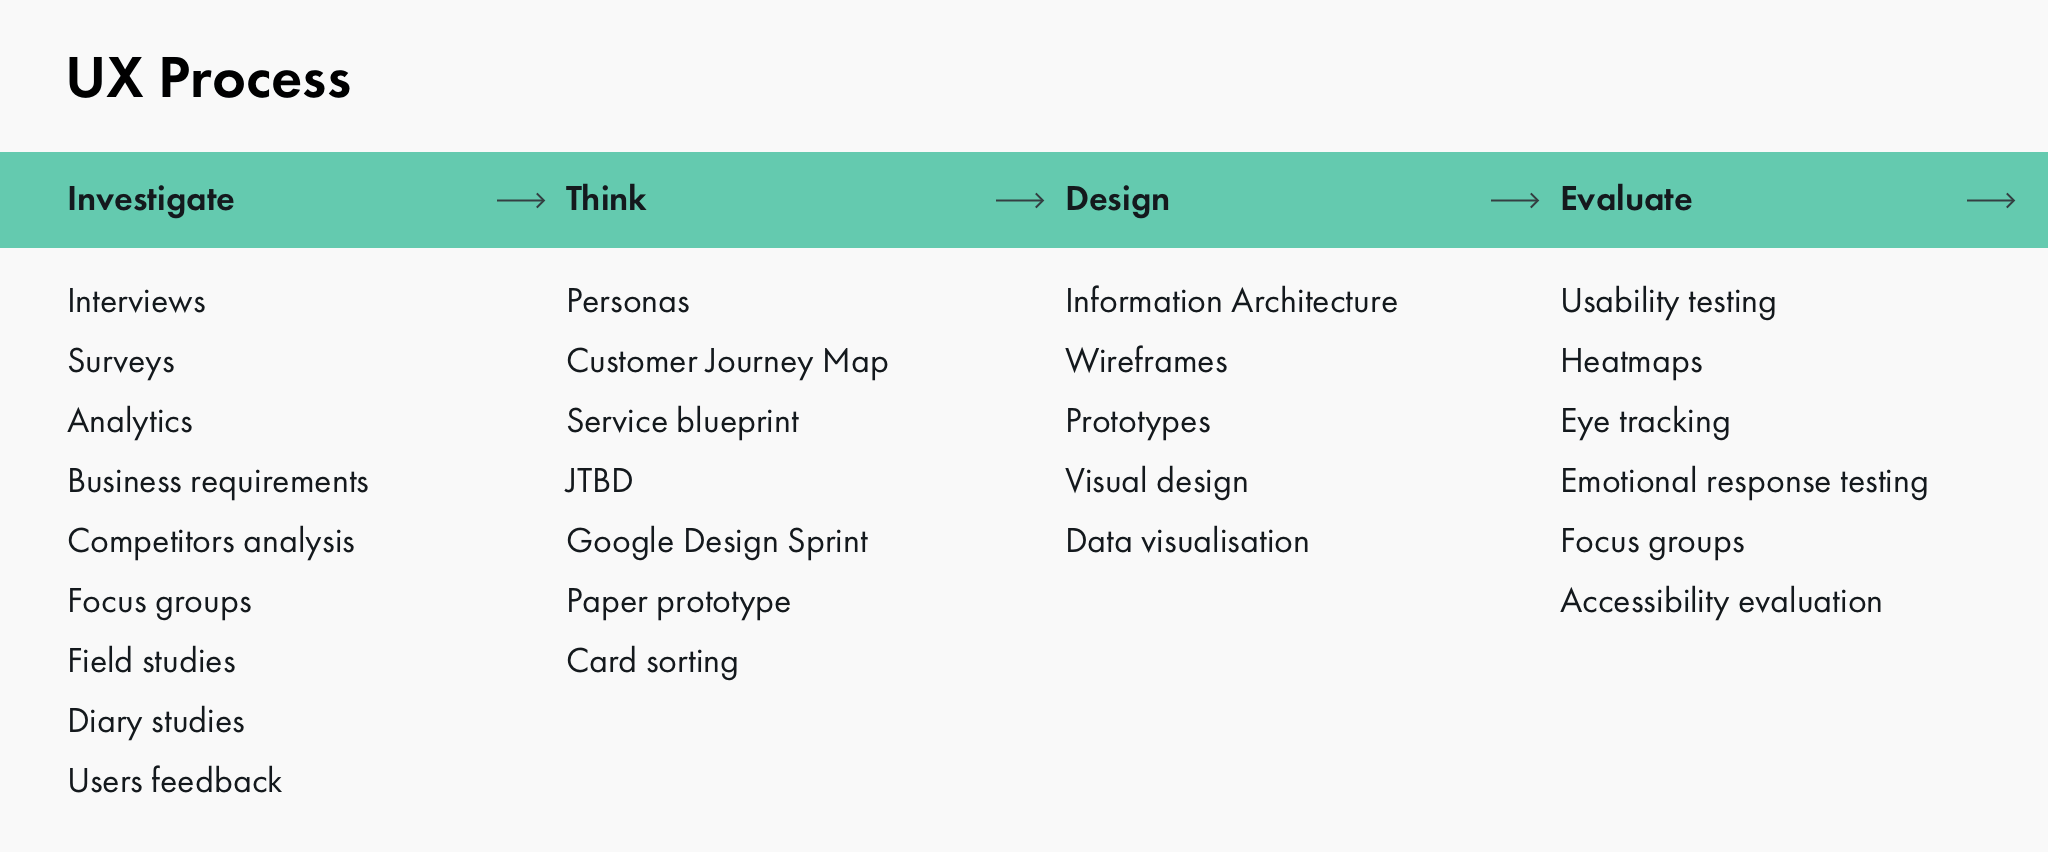 A wild mix of tools, techniques, artifacts, and methodologies for UX prototyping